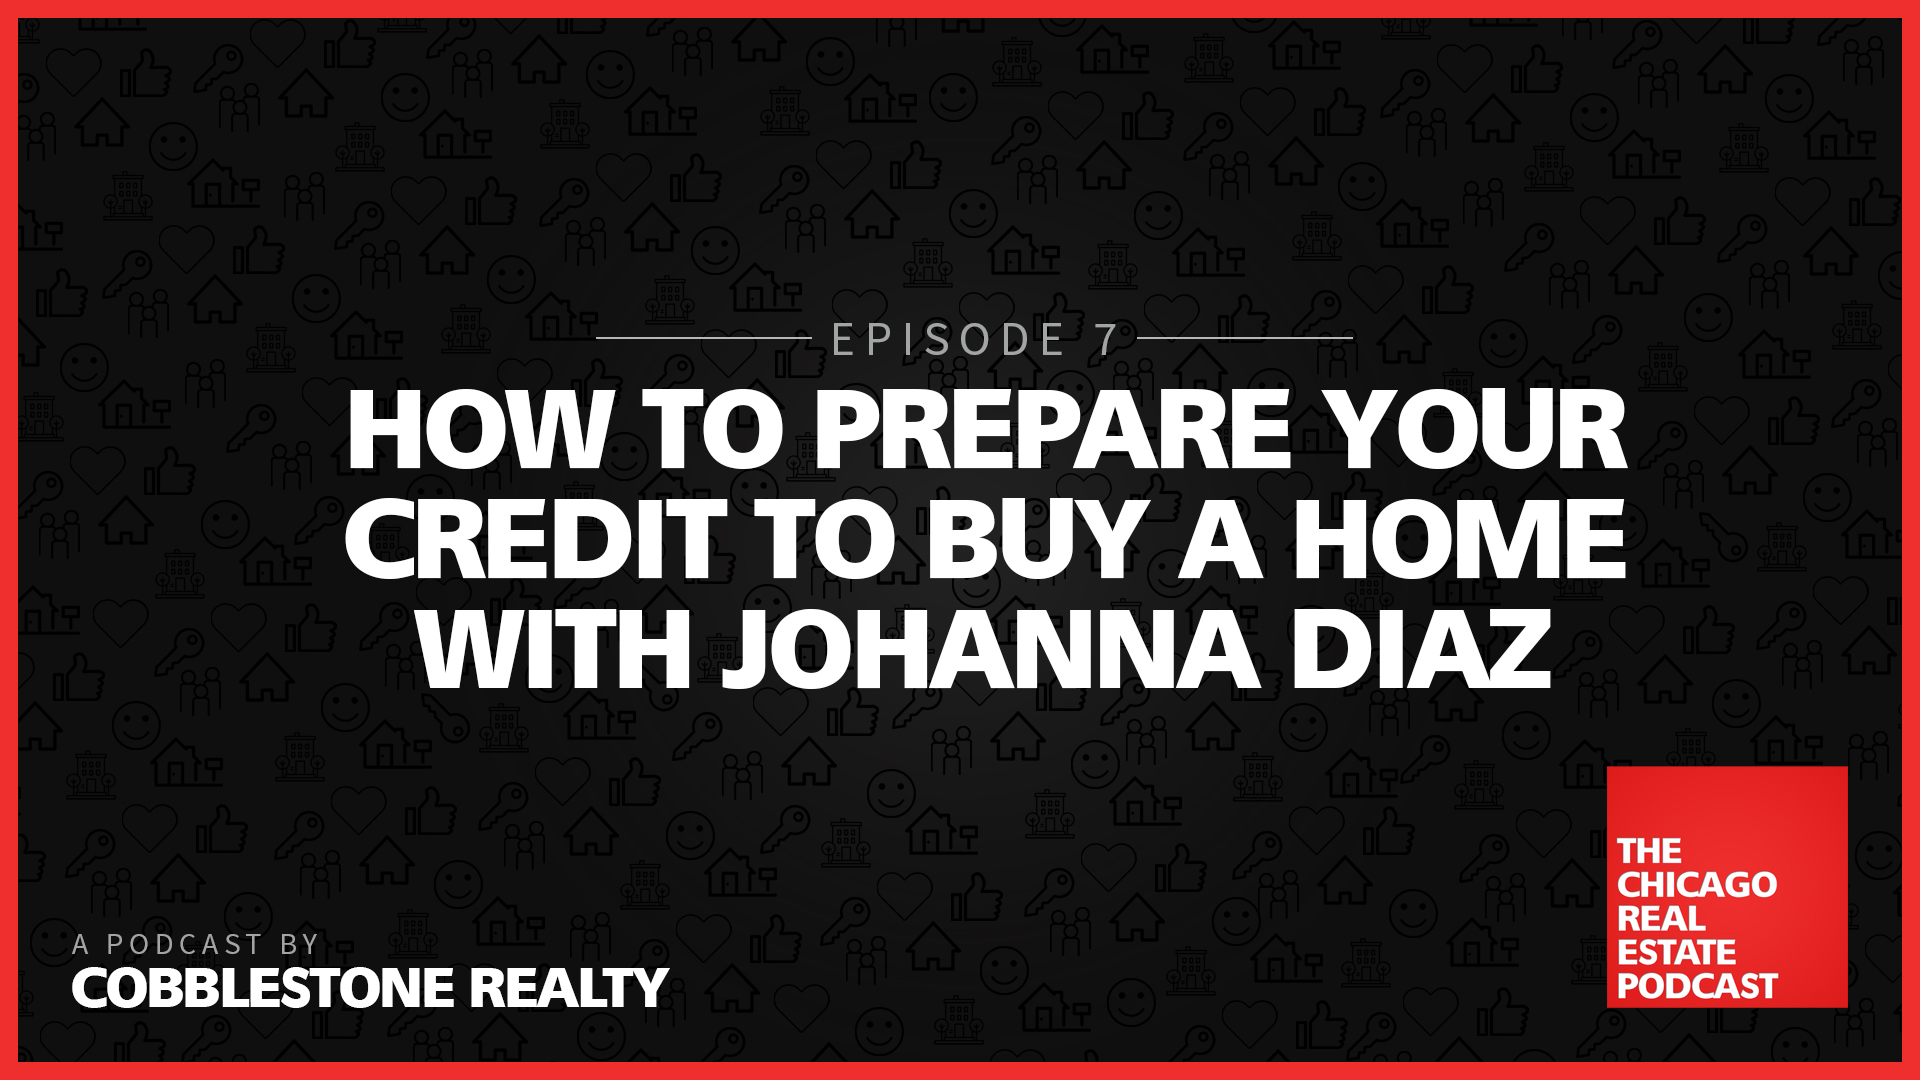 How to prepare your credit to buy a home with johanna diaz